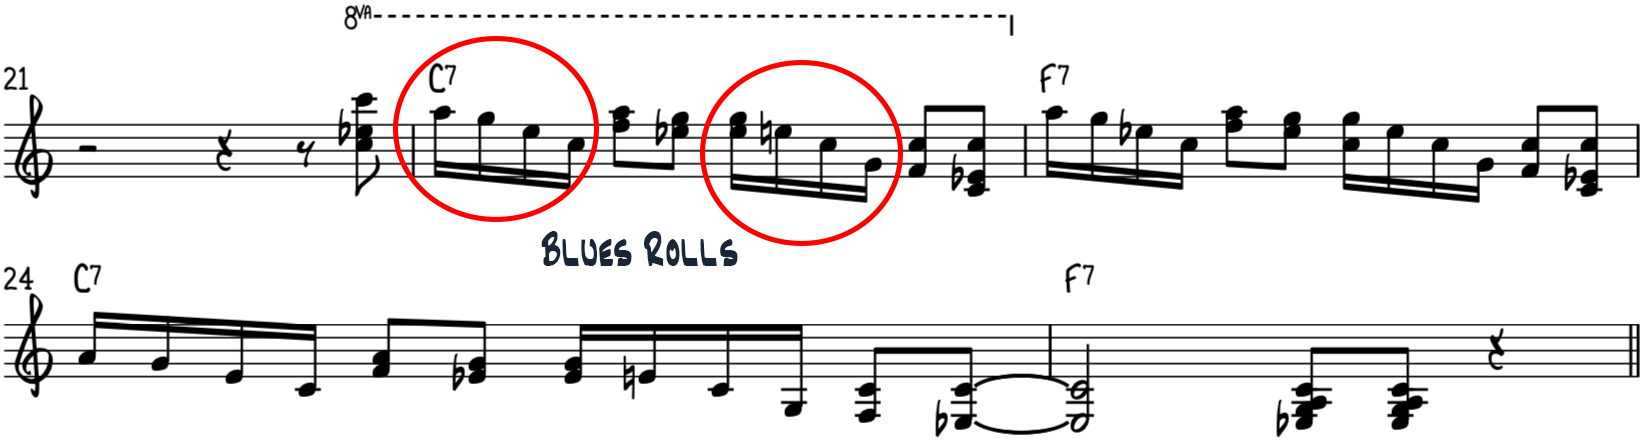 Intermediate funky blues piano riff 2 uses harmonized notes and blues rolls